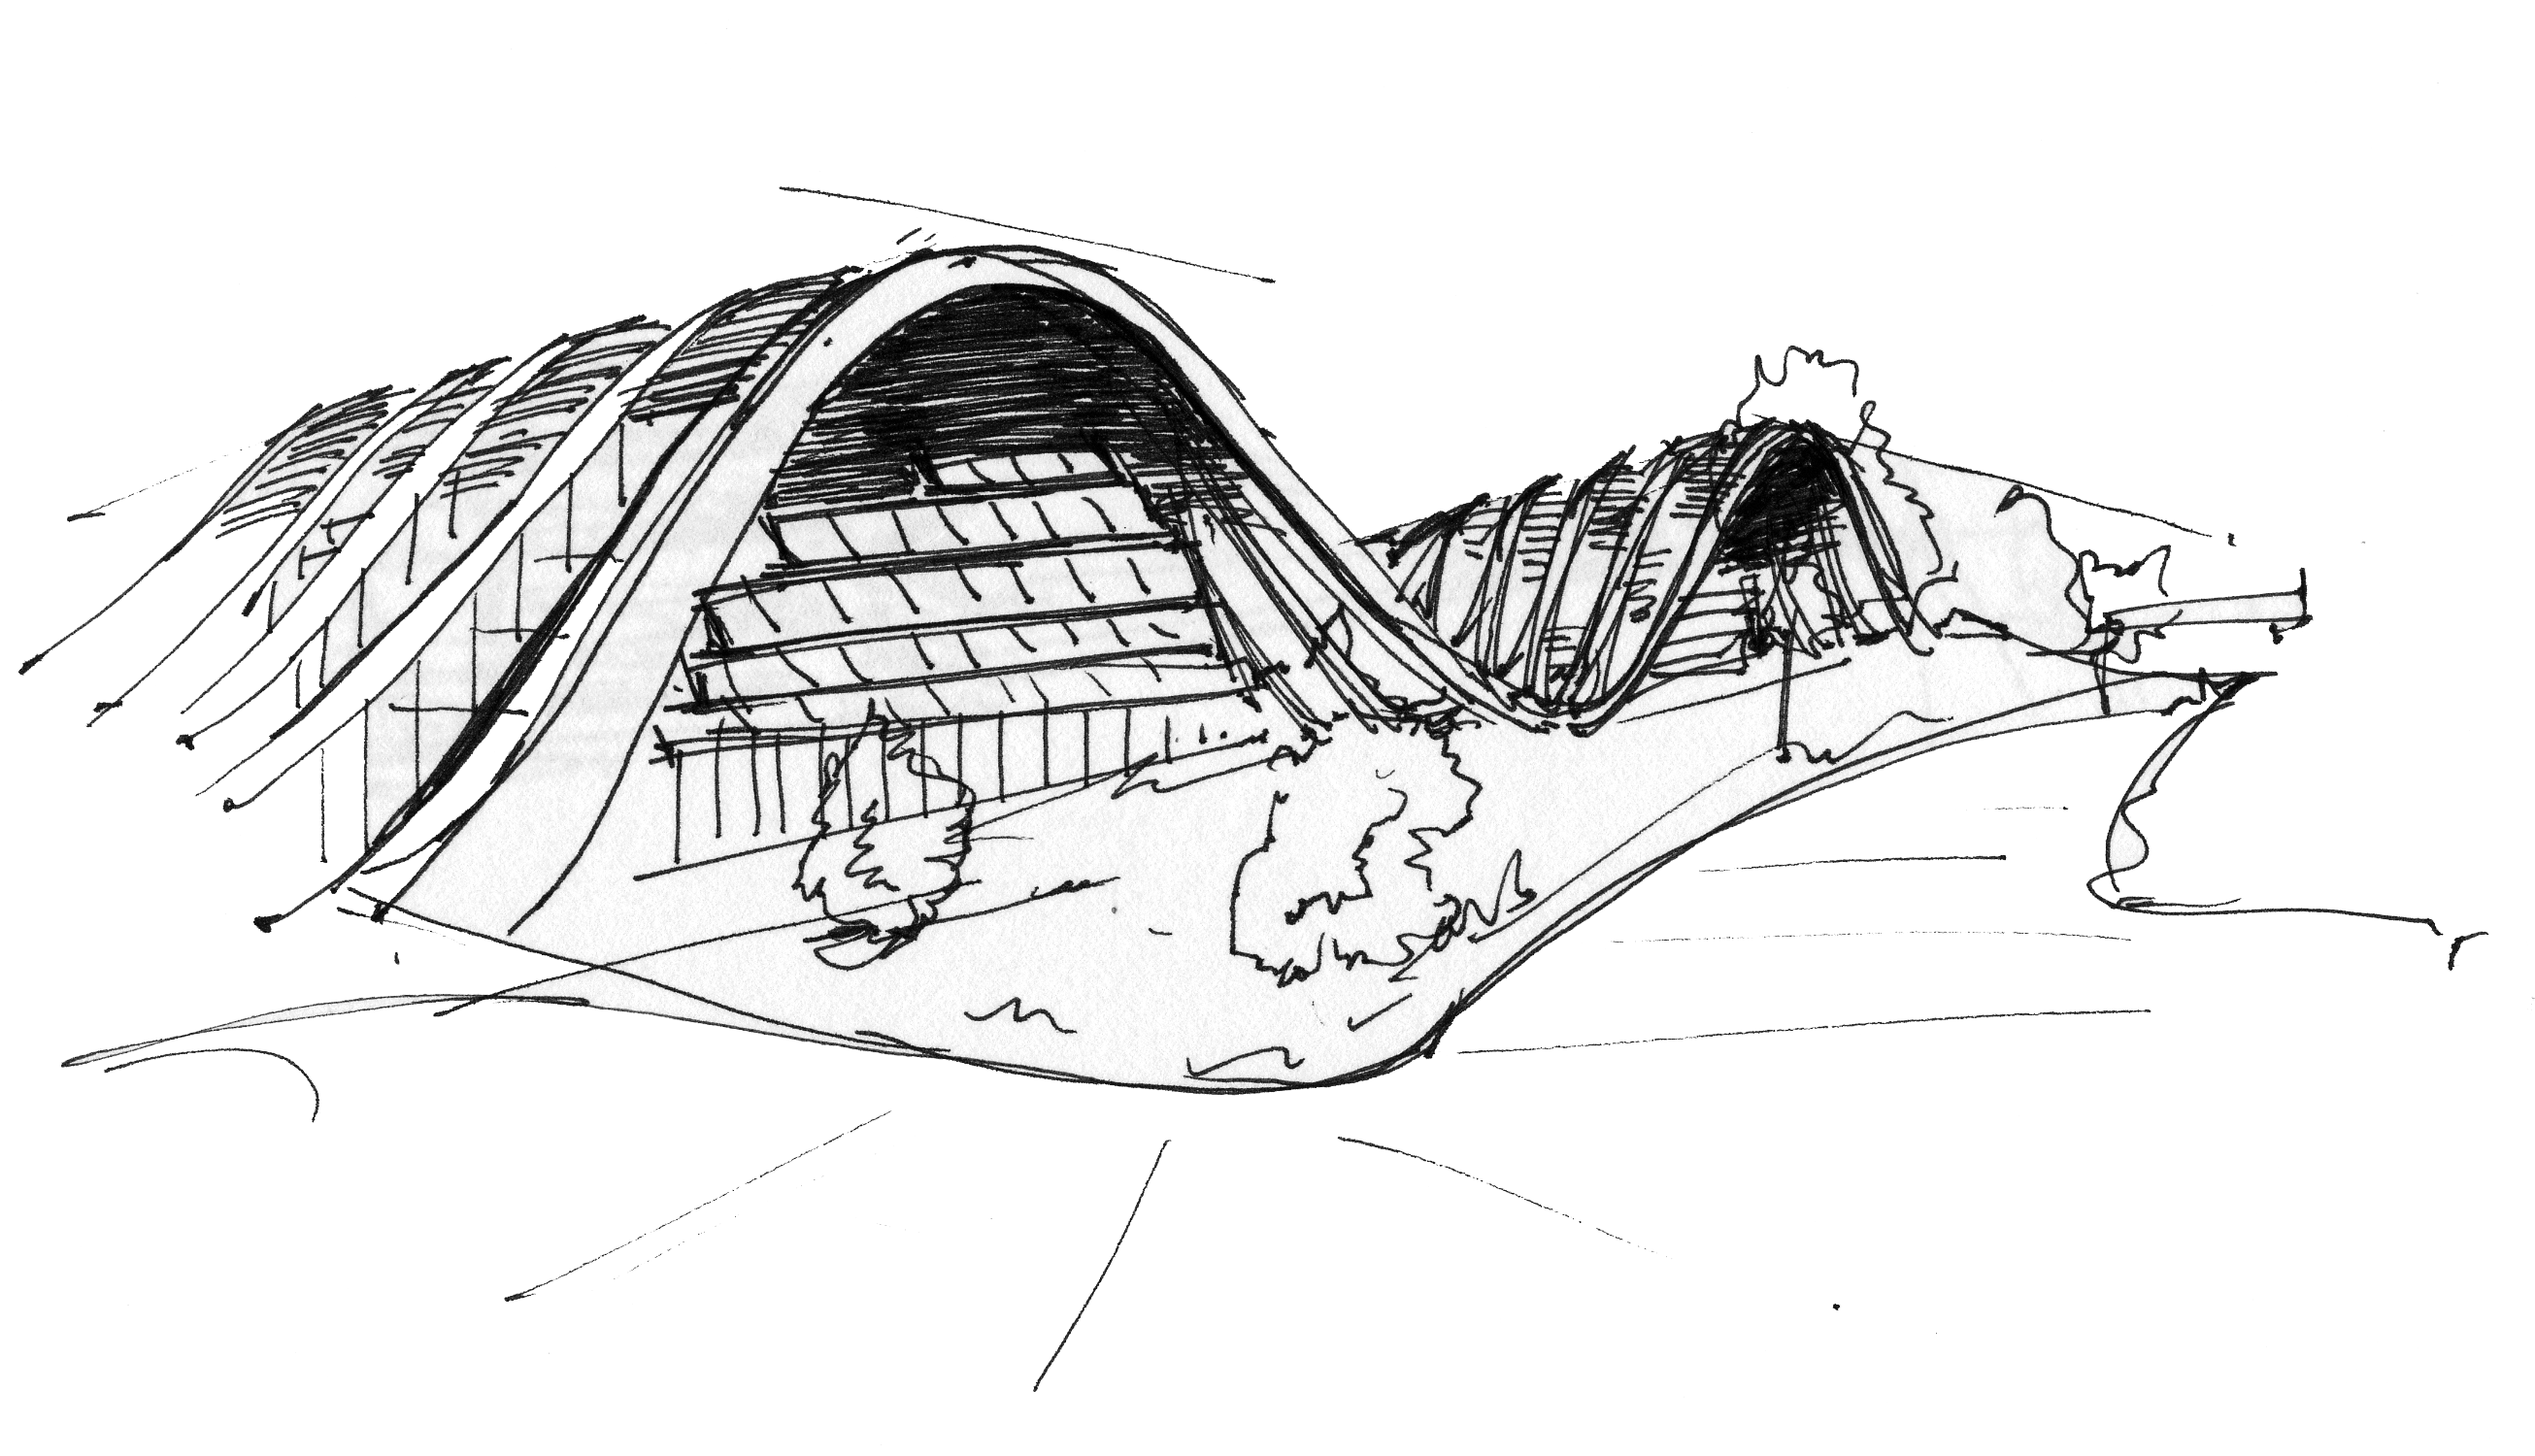 Renzo Piano S Sketches This Is Just A Simple Black